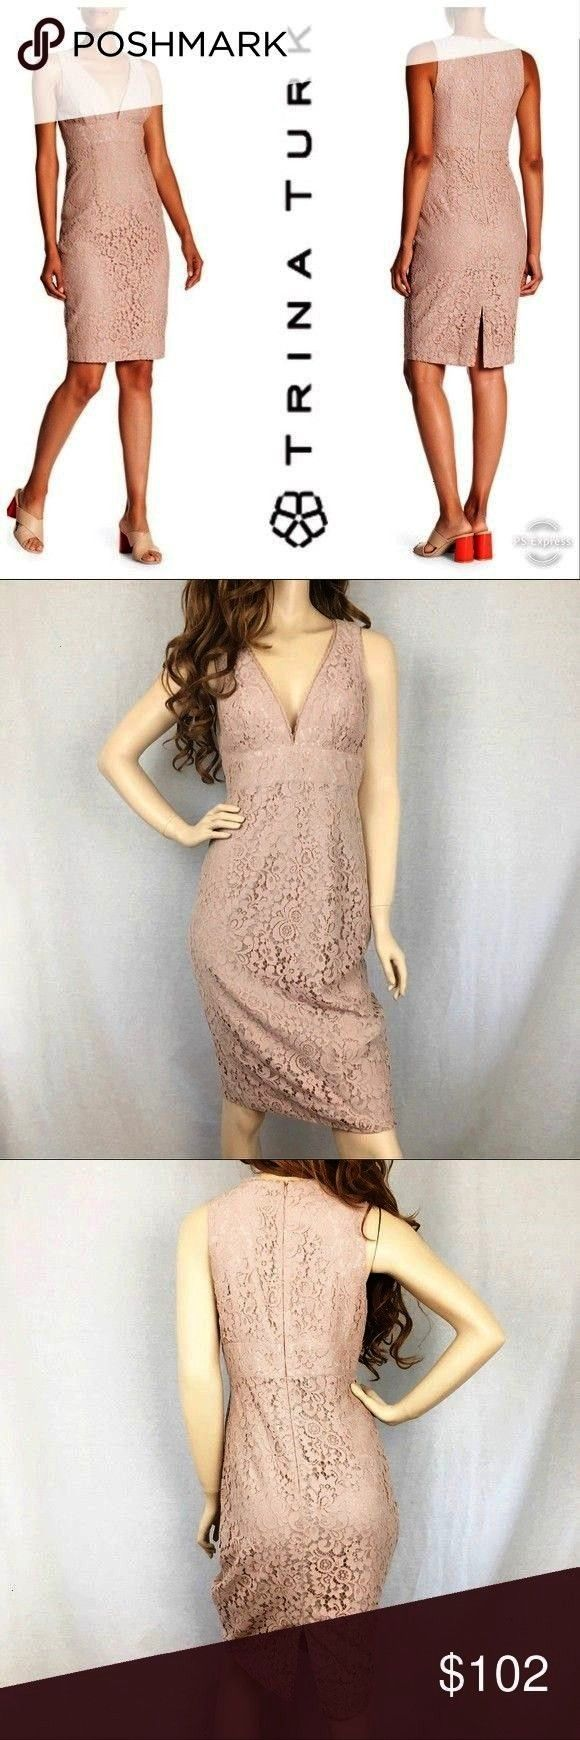 Plunge Neckline Lace Dress NWT A Vneck lacy dress is perfect fr a night out on th Trina Turk Appeal Plunge Neckline Lace Dress NWT A Vneck lacy dress is perfect fr a nigh...